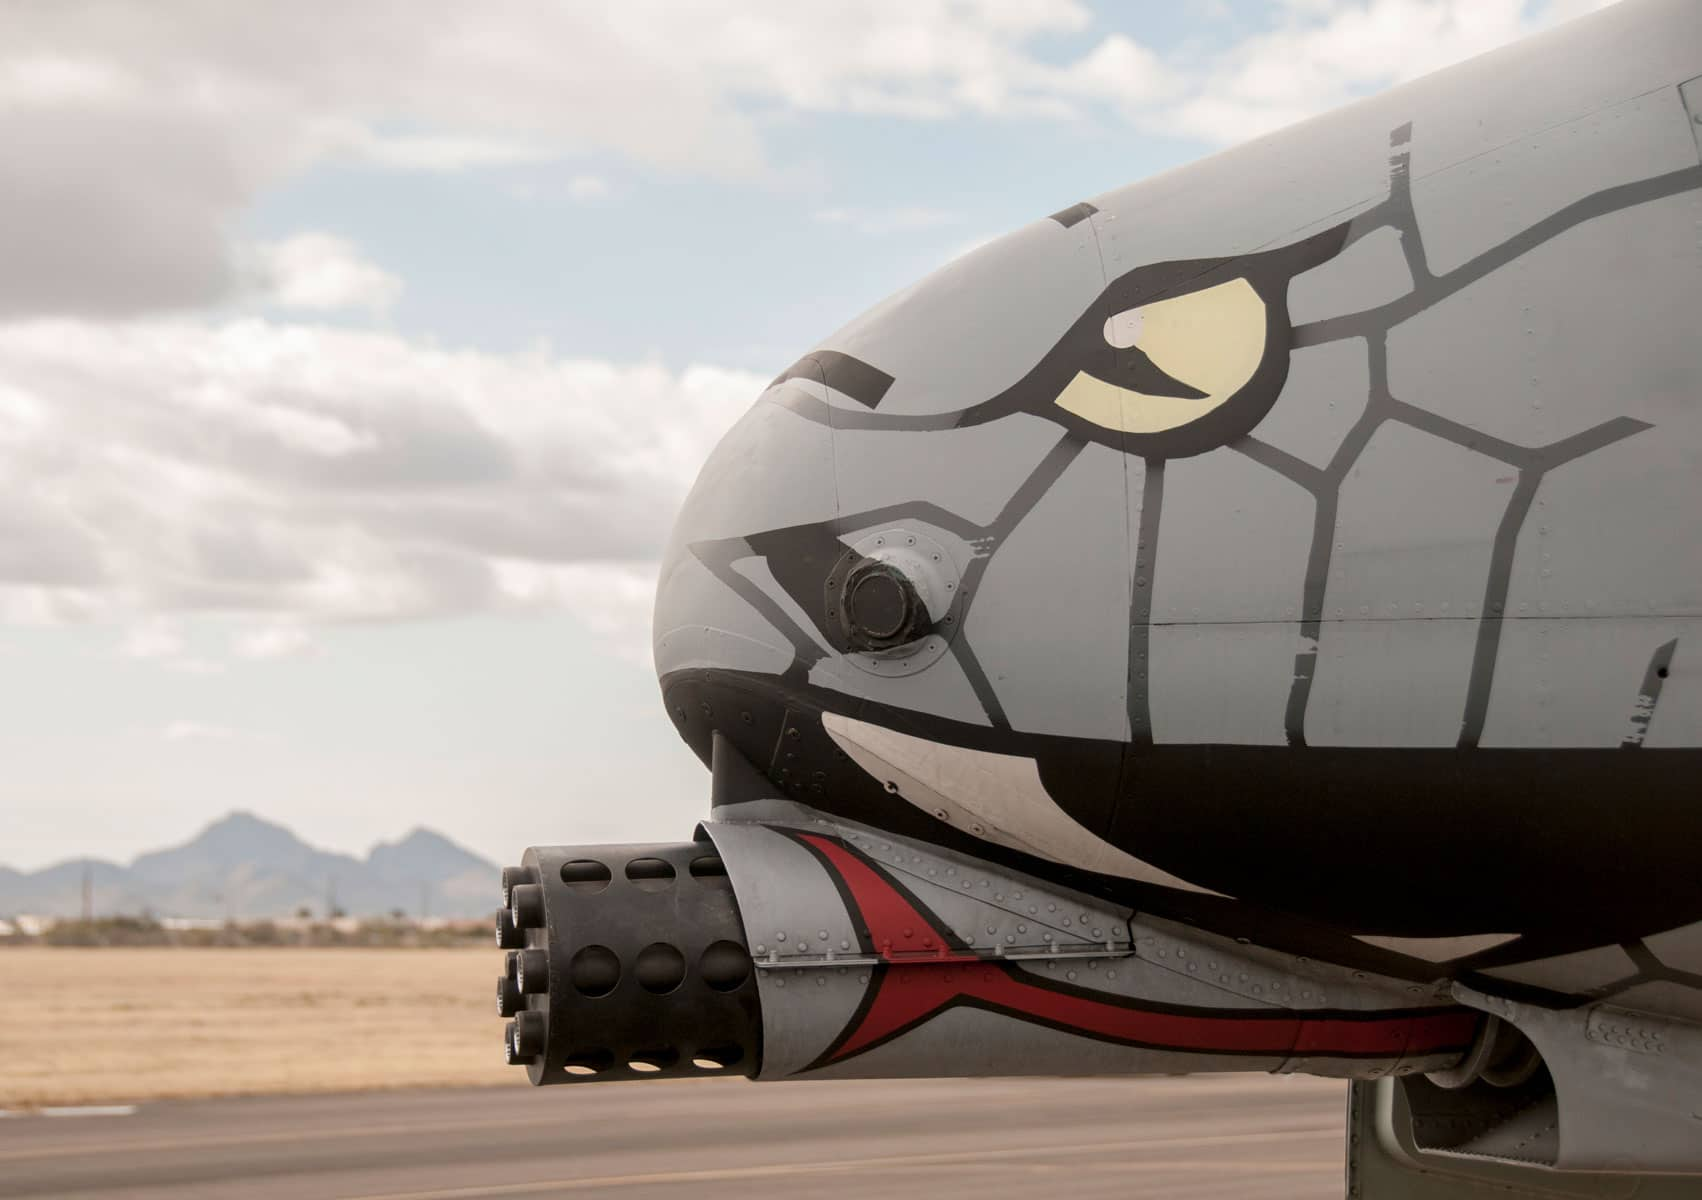 Blacksnakes Train to Strike: A10 aircraft, crew and support personnel from the 122nd Fighter Wing traveled to Davis-Monthan Air Force Base, Arizona, for Operation Snowbird, an exercise at the Total Force Training Center.